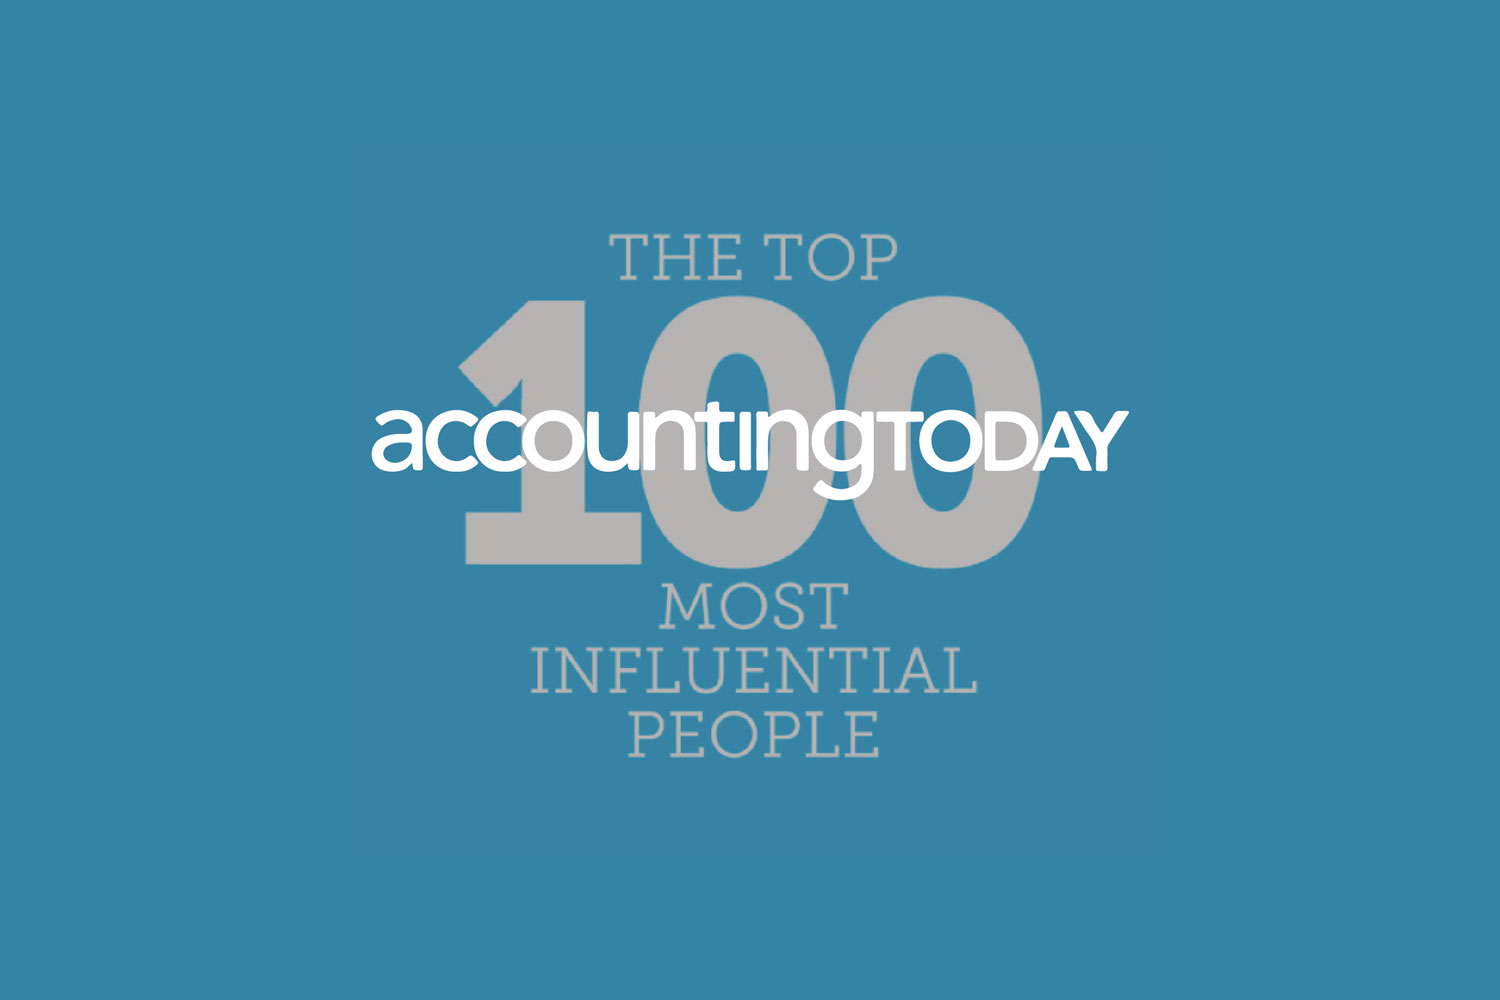 2015 Accounting Today's Top 100 Most Influential People    2016 Accounting Today's Top 100 Most Influential People    2017 Accounting Today's Top 100 Most Influential People